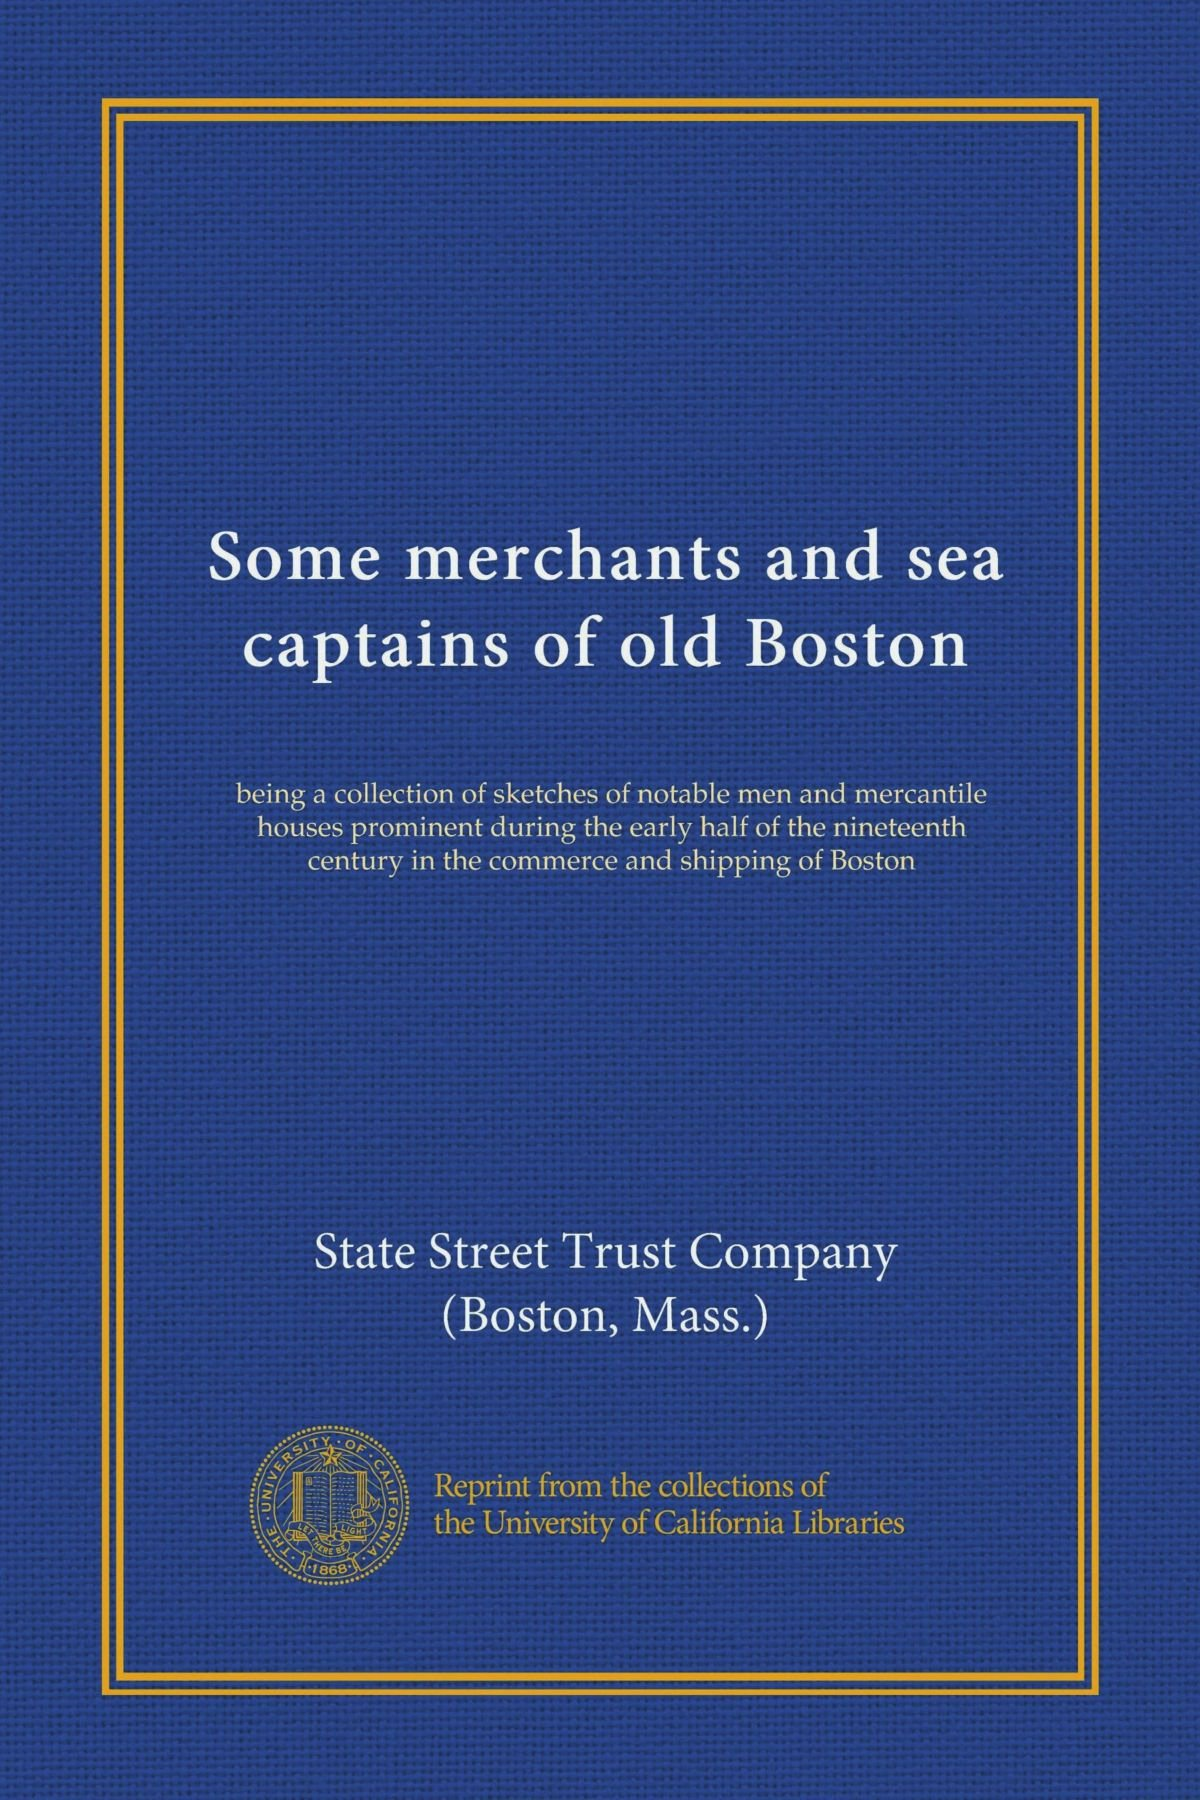 Some merchants and sea captains of old Boston: being a collection of sketches of notable men and mercantile houses prominent during the early half of ... in the commerce and shipping of Boston pdf epub